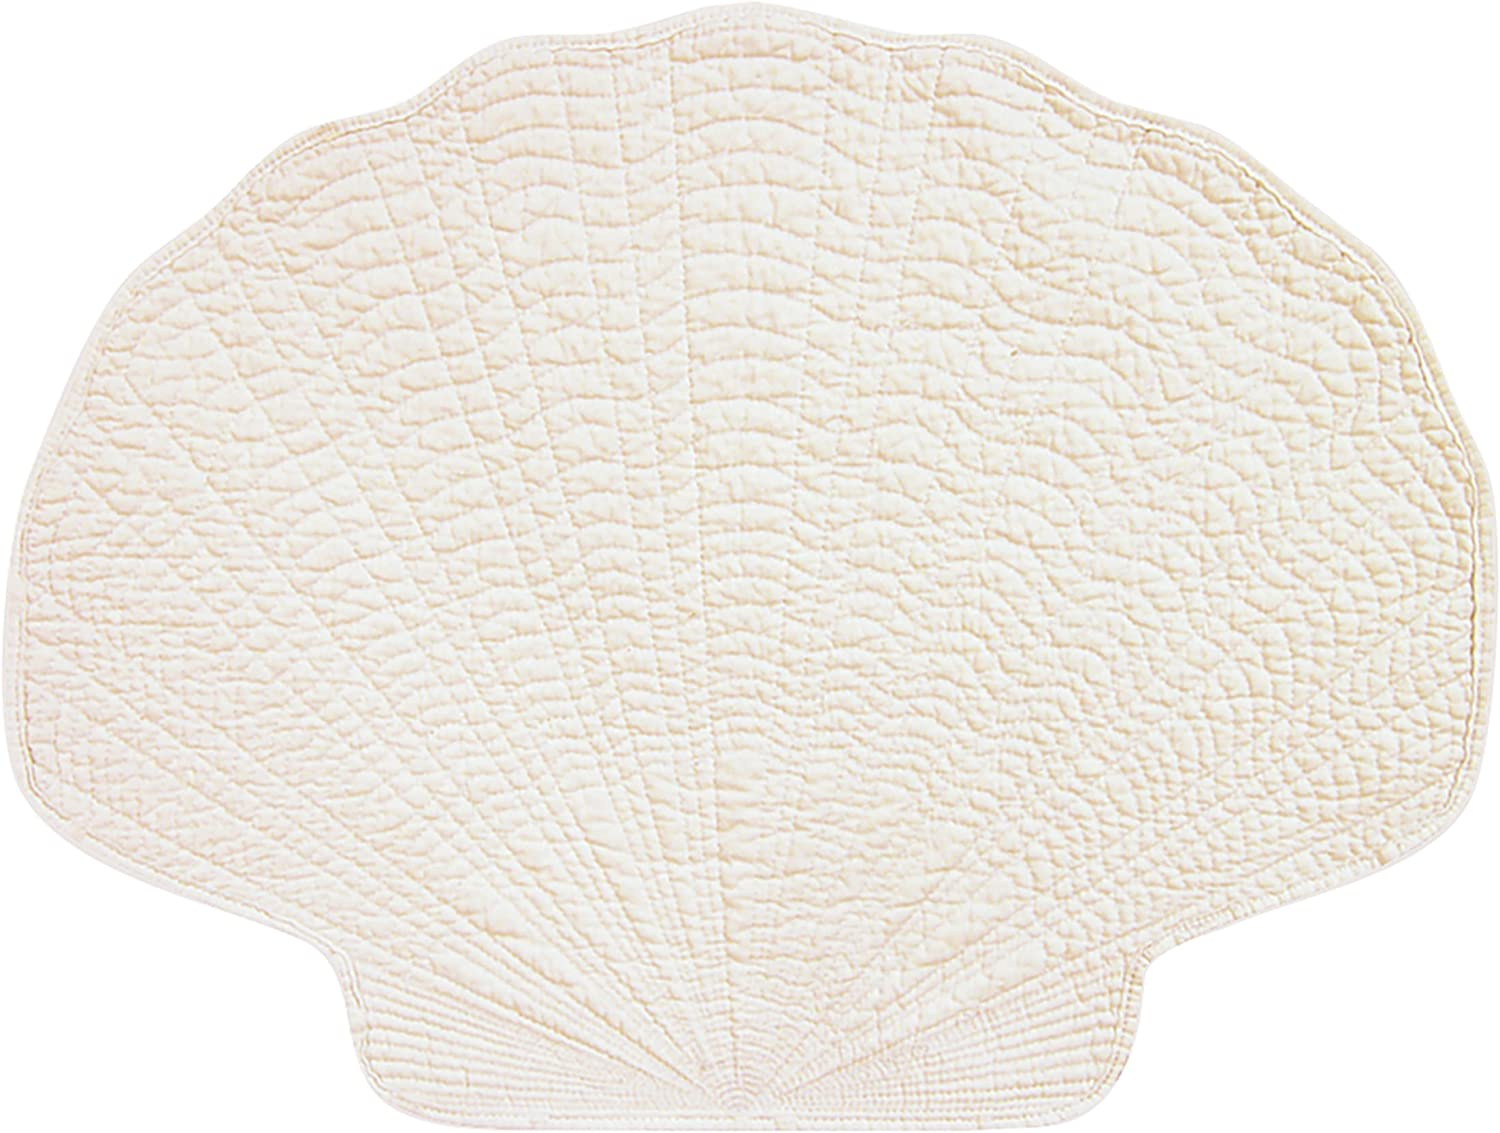 C&F Home White Shell Cotton Reversible Machine Washable Placemat Set of 4 Shell Placemat White